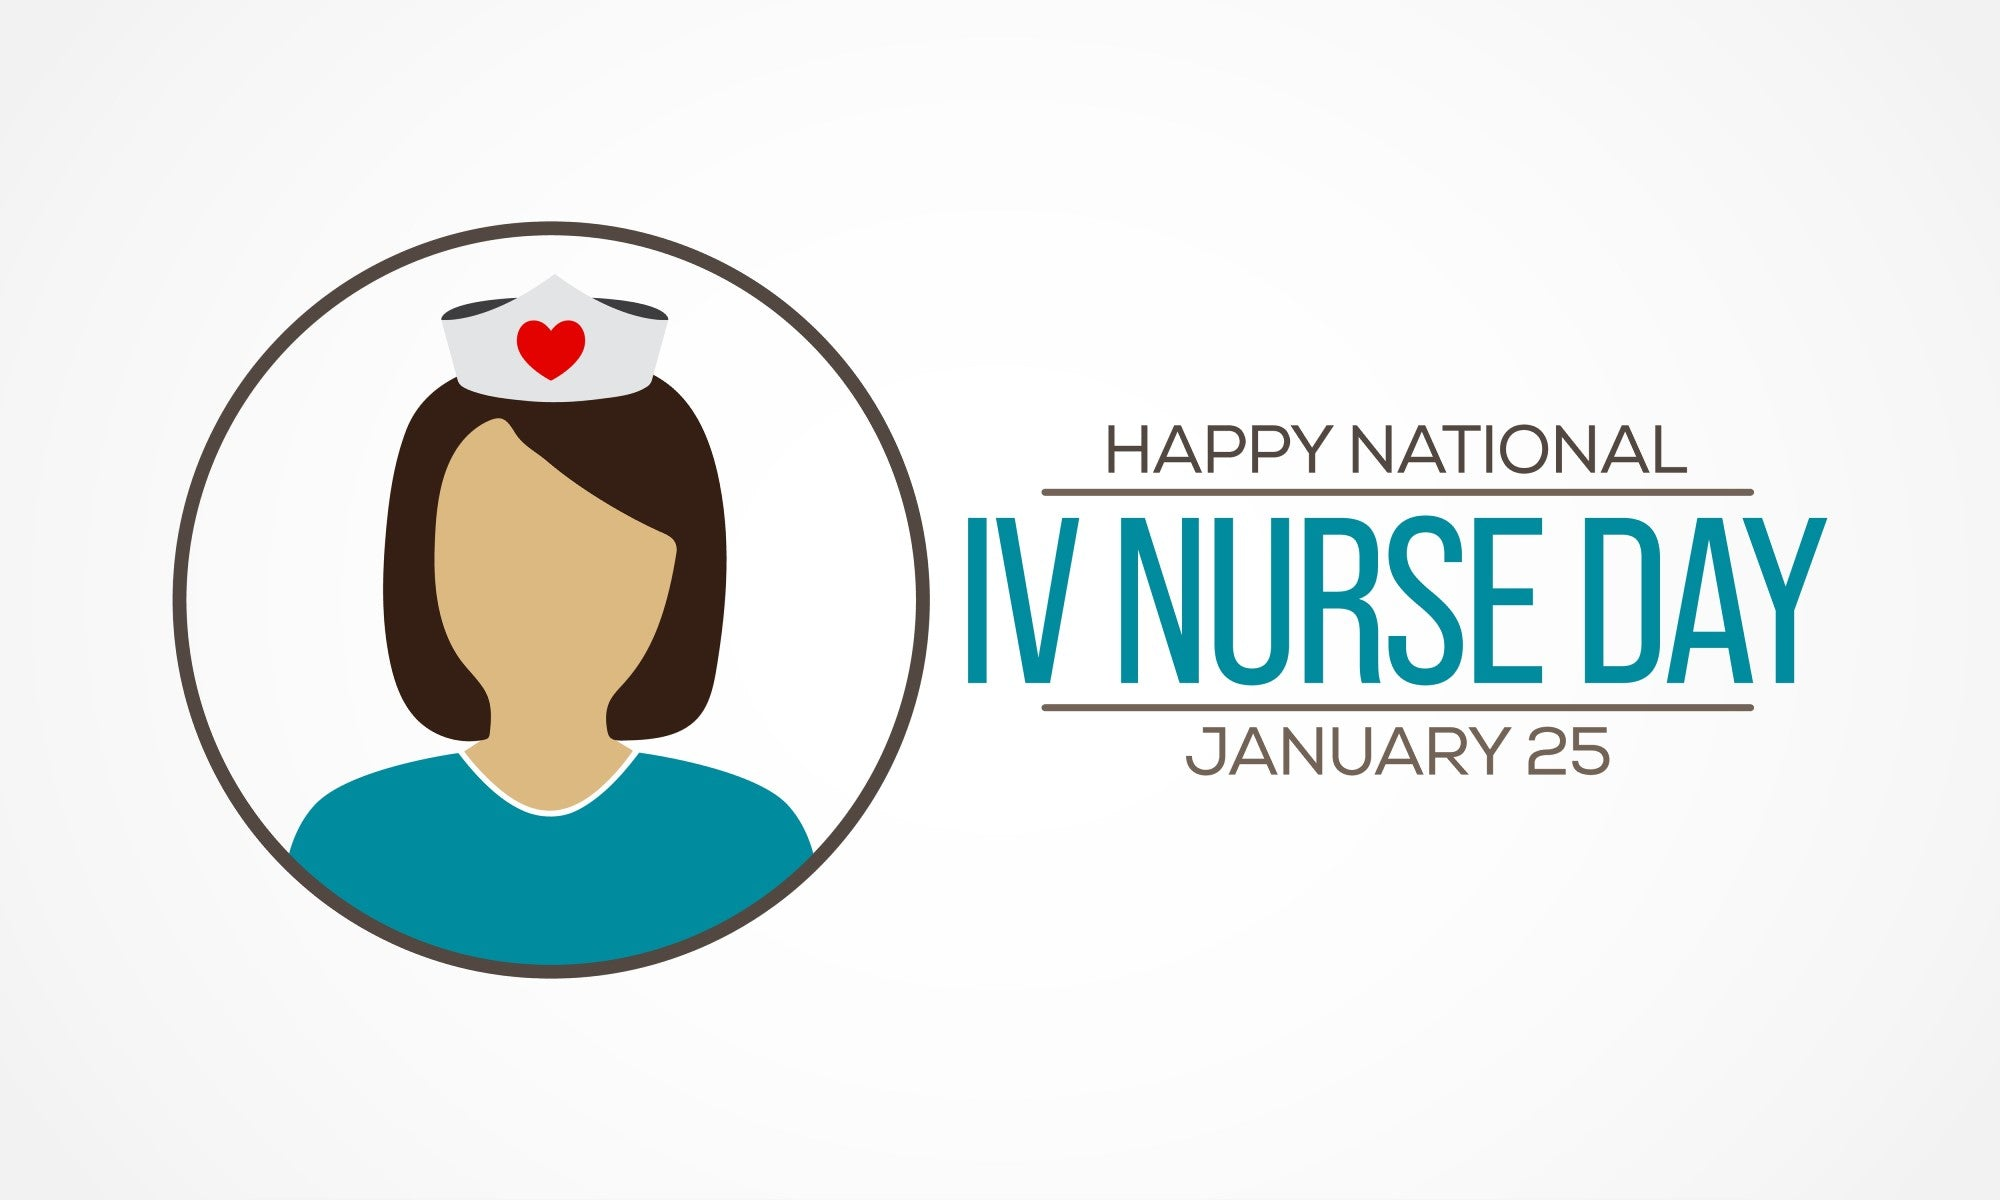 National IV Nurse Day is January 25